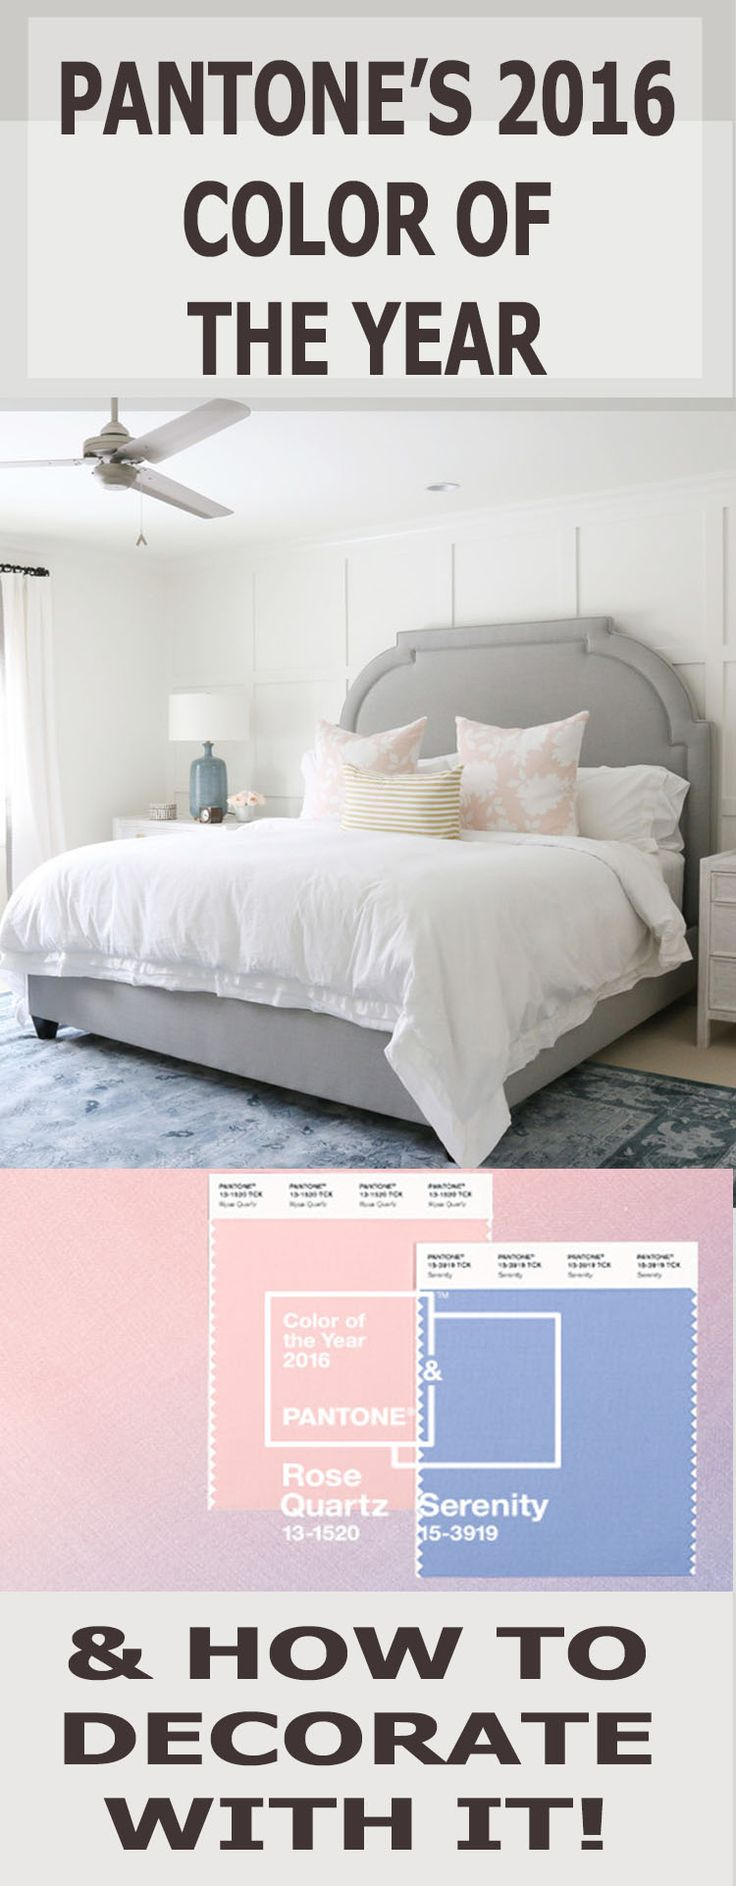 7 best serenity and rose quartz pantone 39 s colors of the year 2016 images on pinterest. Black Bedroom Furniture Sets. Home Design Ideas